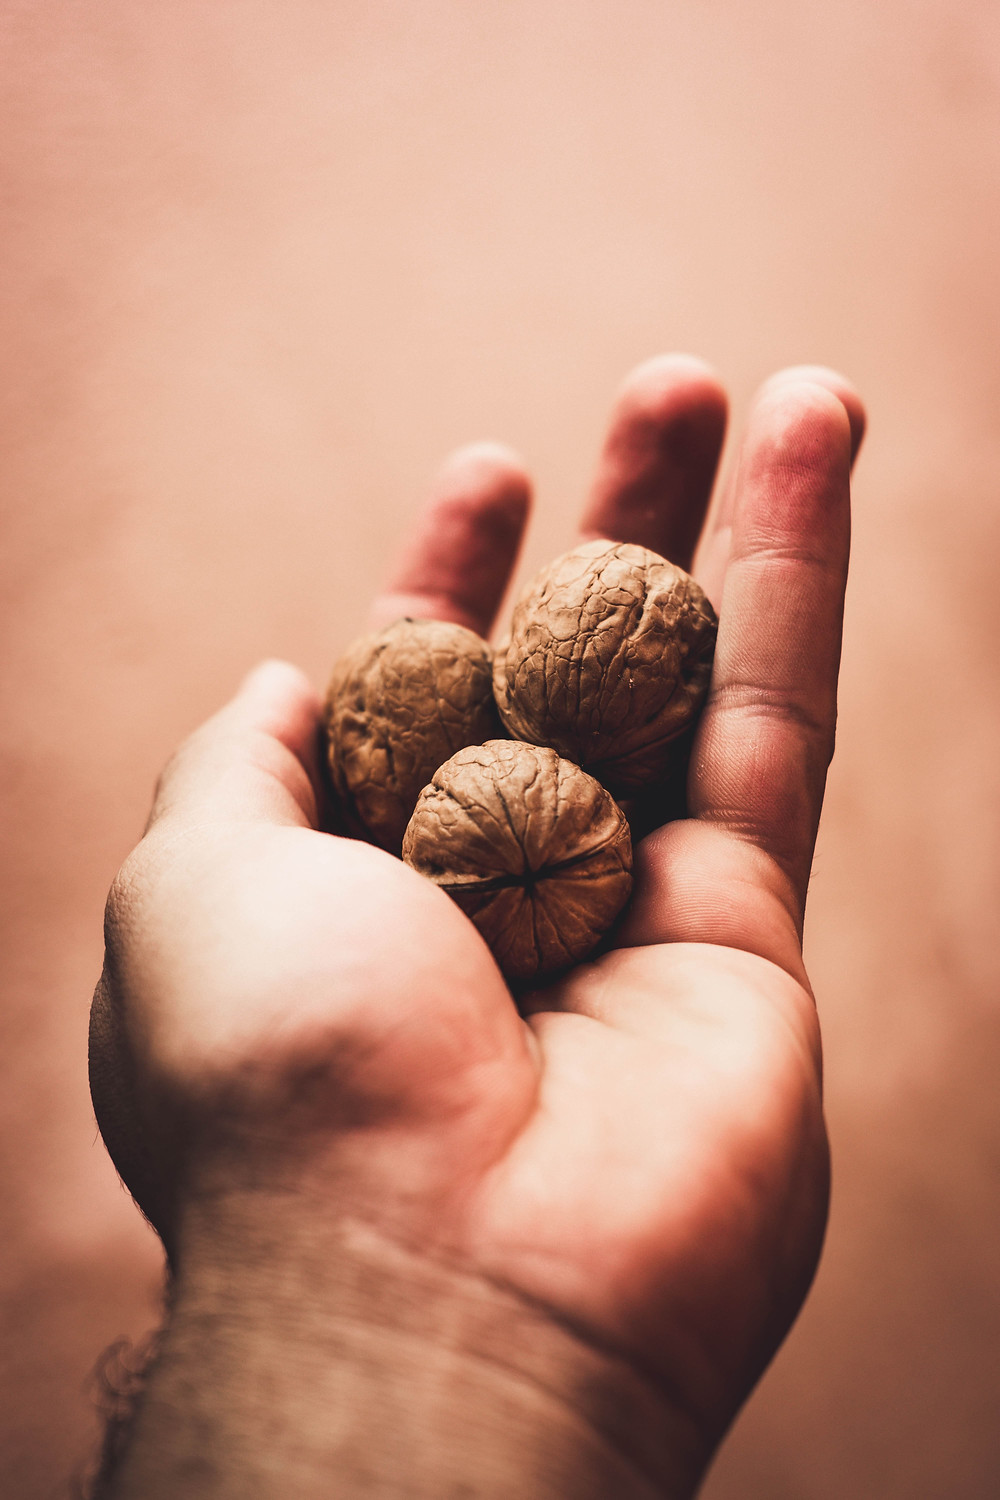 A hand holding some walnuts.